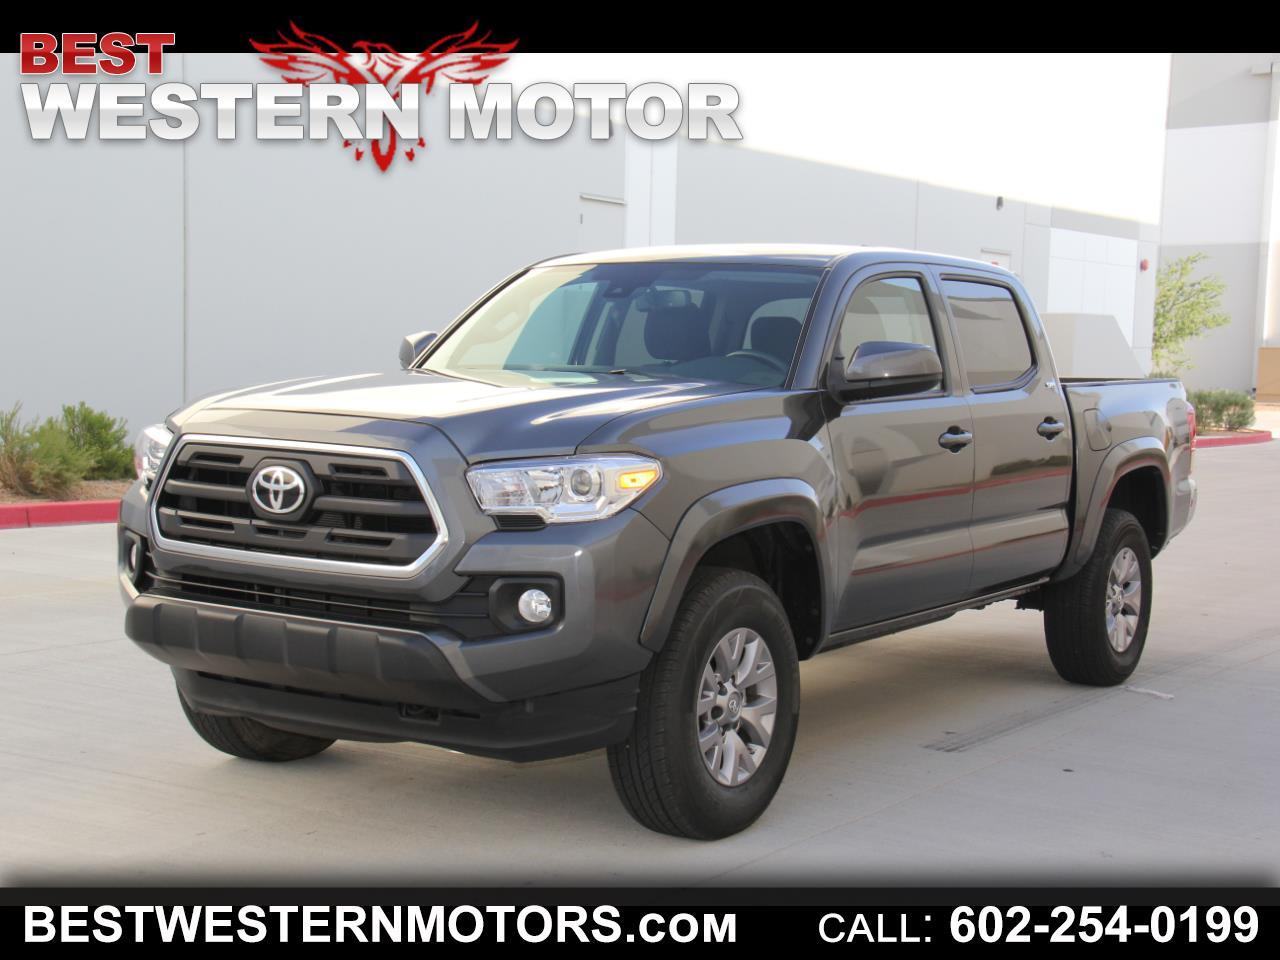 Toyota Tacoma SR5 Double Cab Long Bed V6 6AT 2WD 2018